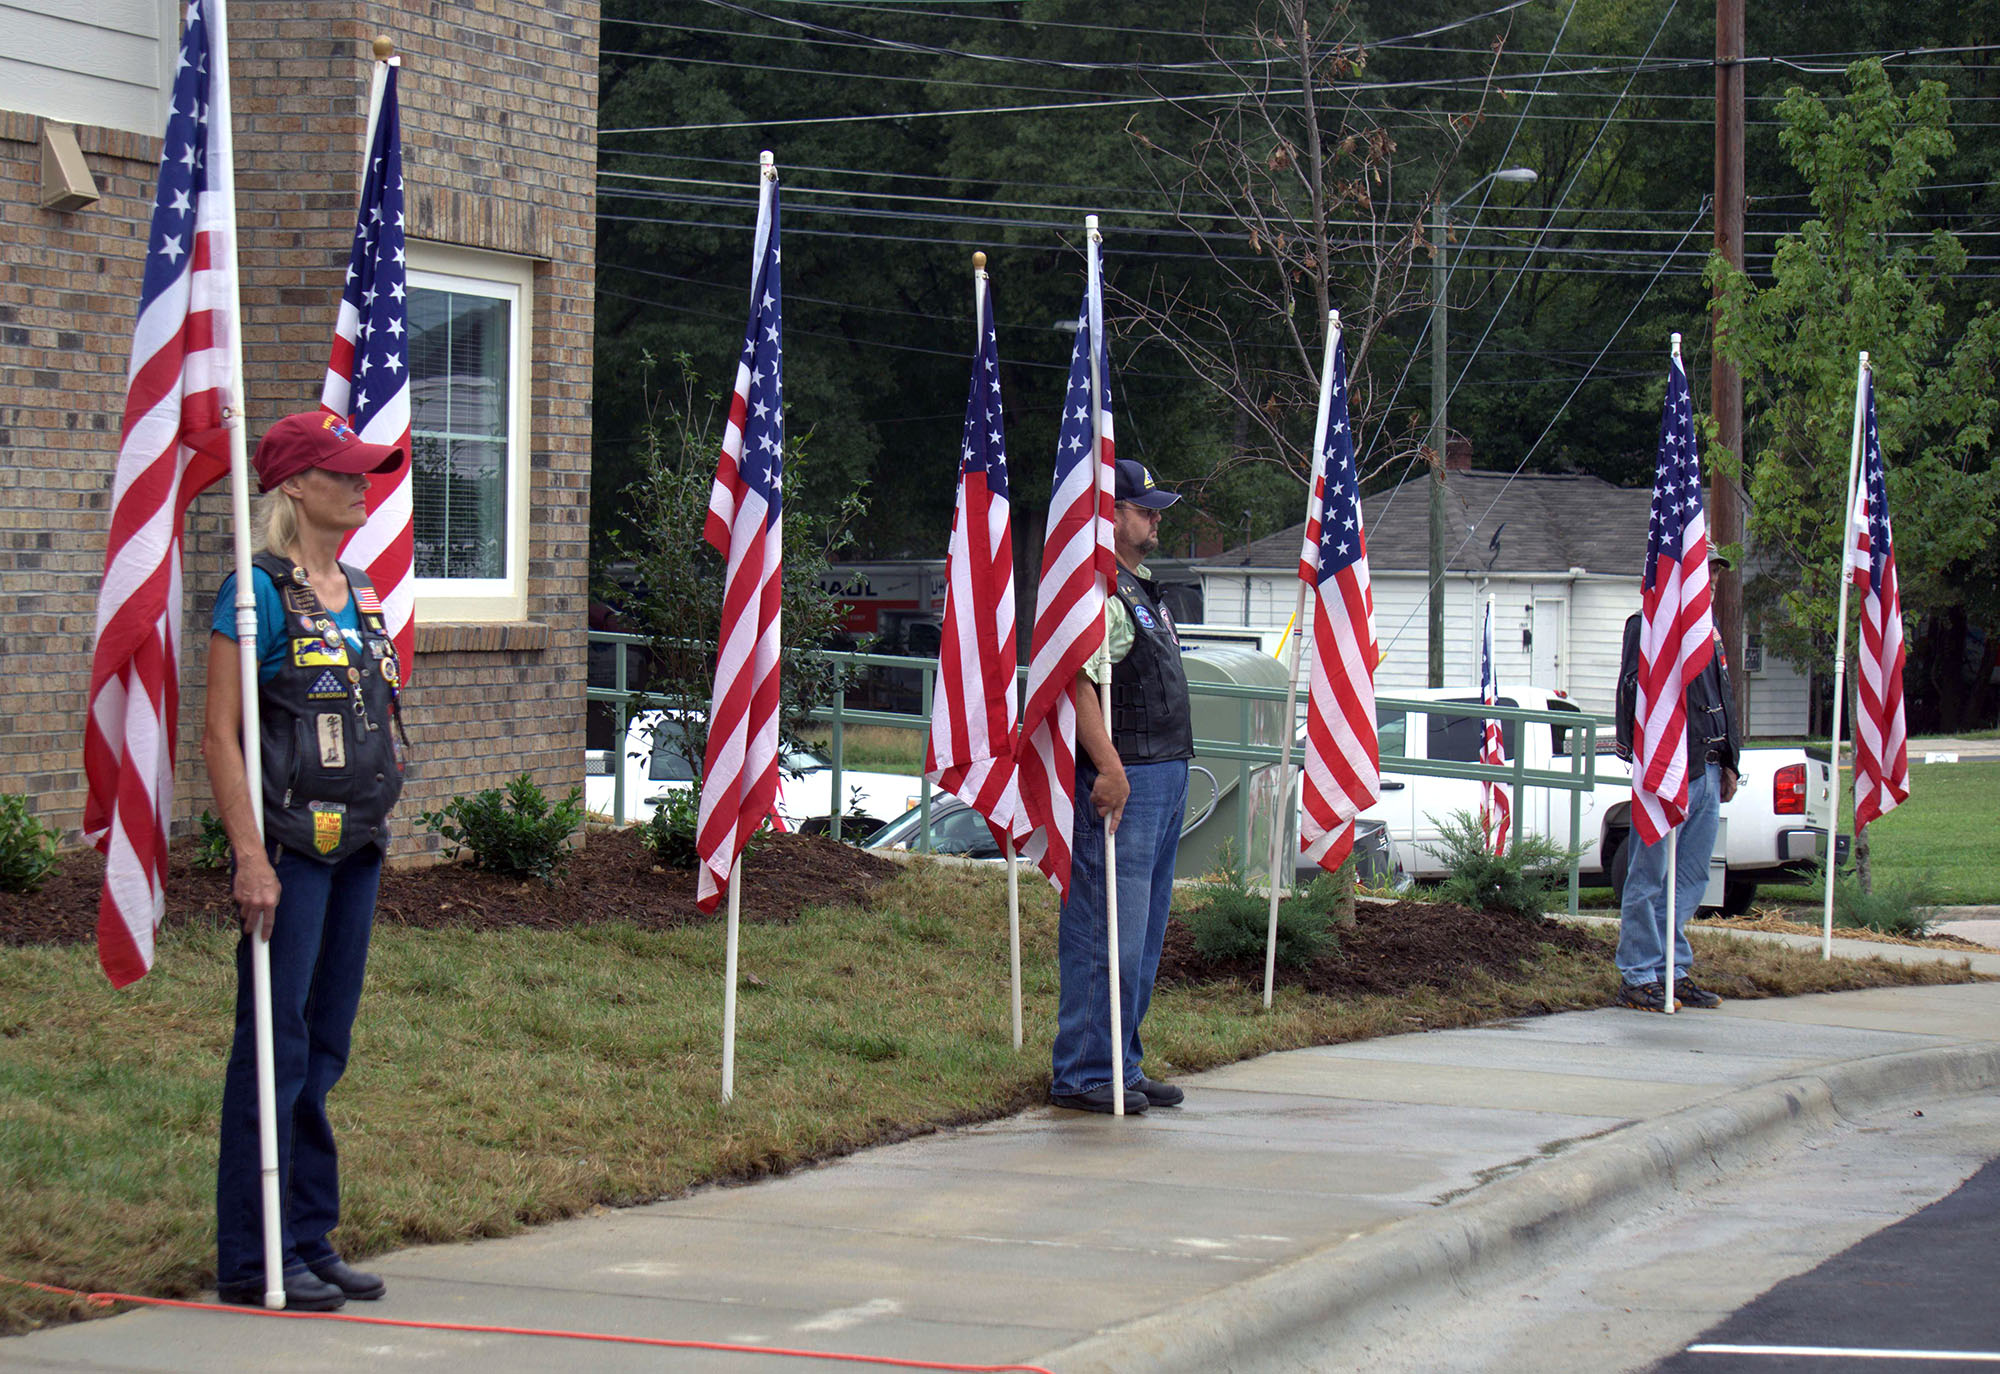 Veterans stand with American flags to celebrate the opening of the Denson Apartments in September. (Staff photo by Olivia Browning)